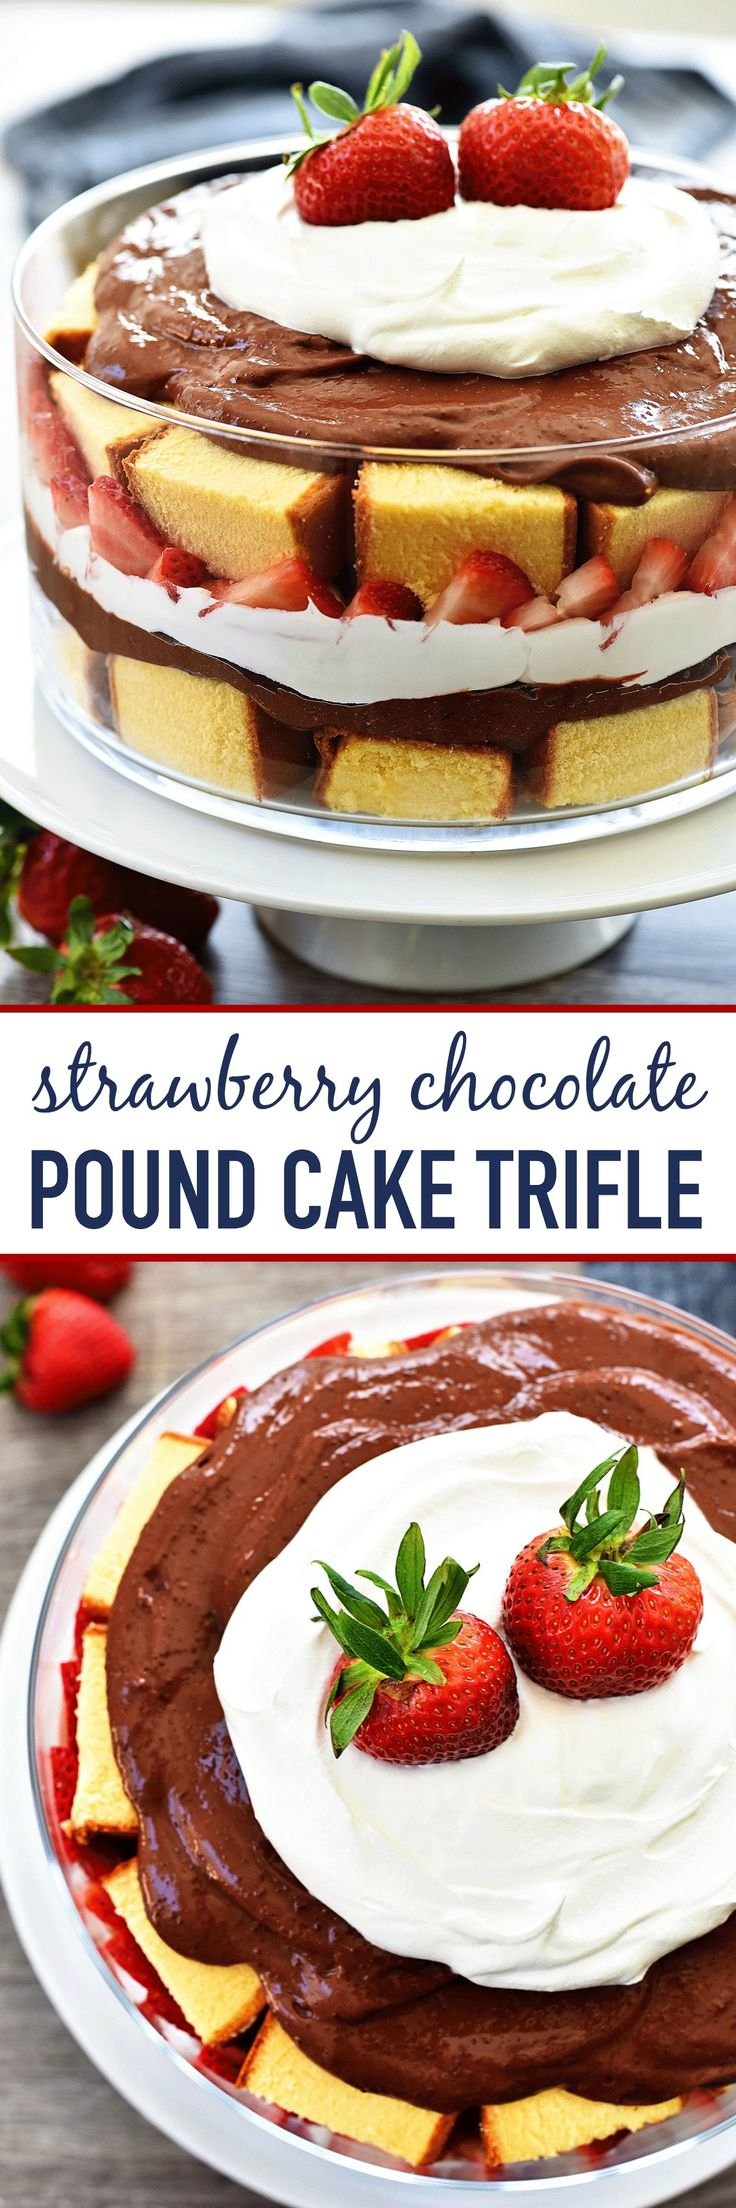 Last Friday, after my girls were out of school, we got together in the kitchen and whipped up this incredible STRAWBERRY CHOCOLATE POUND CAKE TRIFLE! I've come to love being with my girls in the kitchen. Not too long ago it honestly gave me anxiety to have my kids cook with me. Terrible, I know.... Read More »